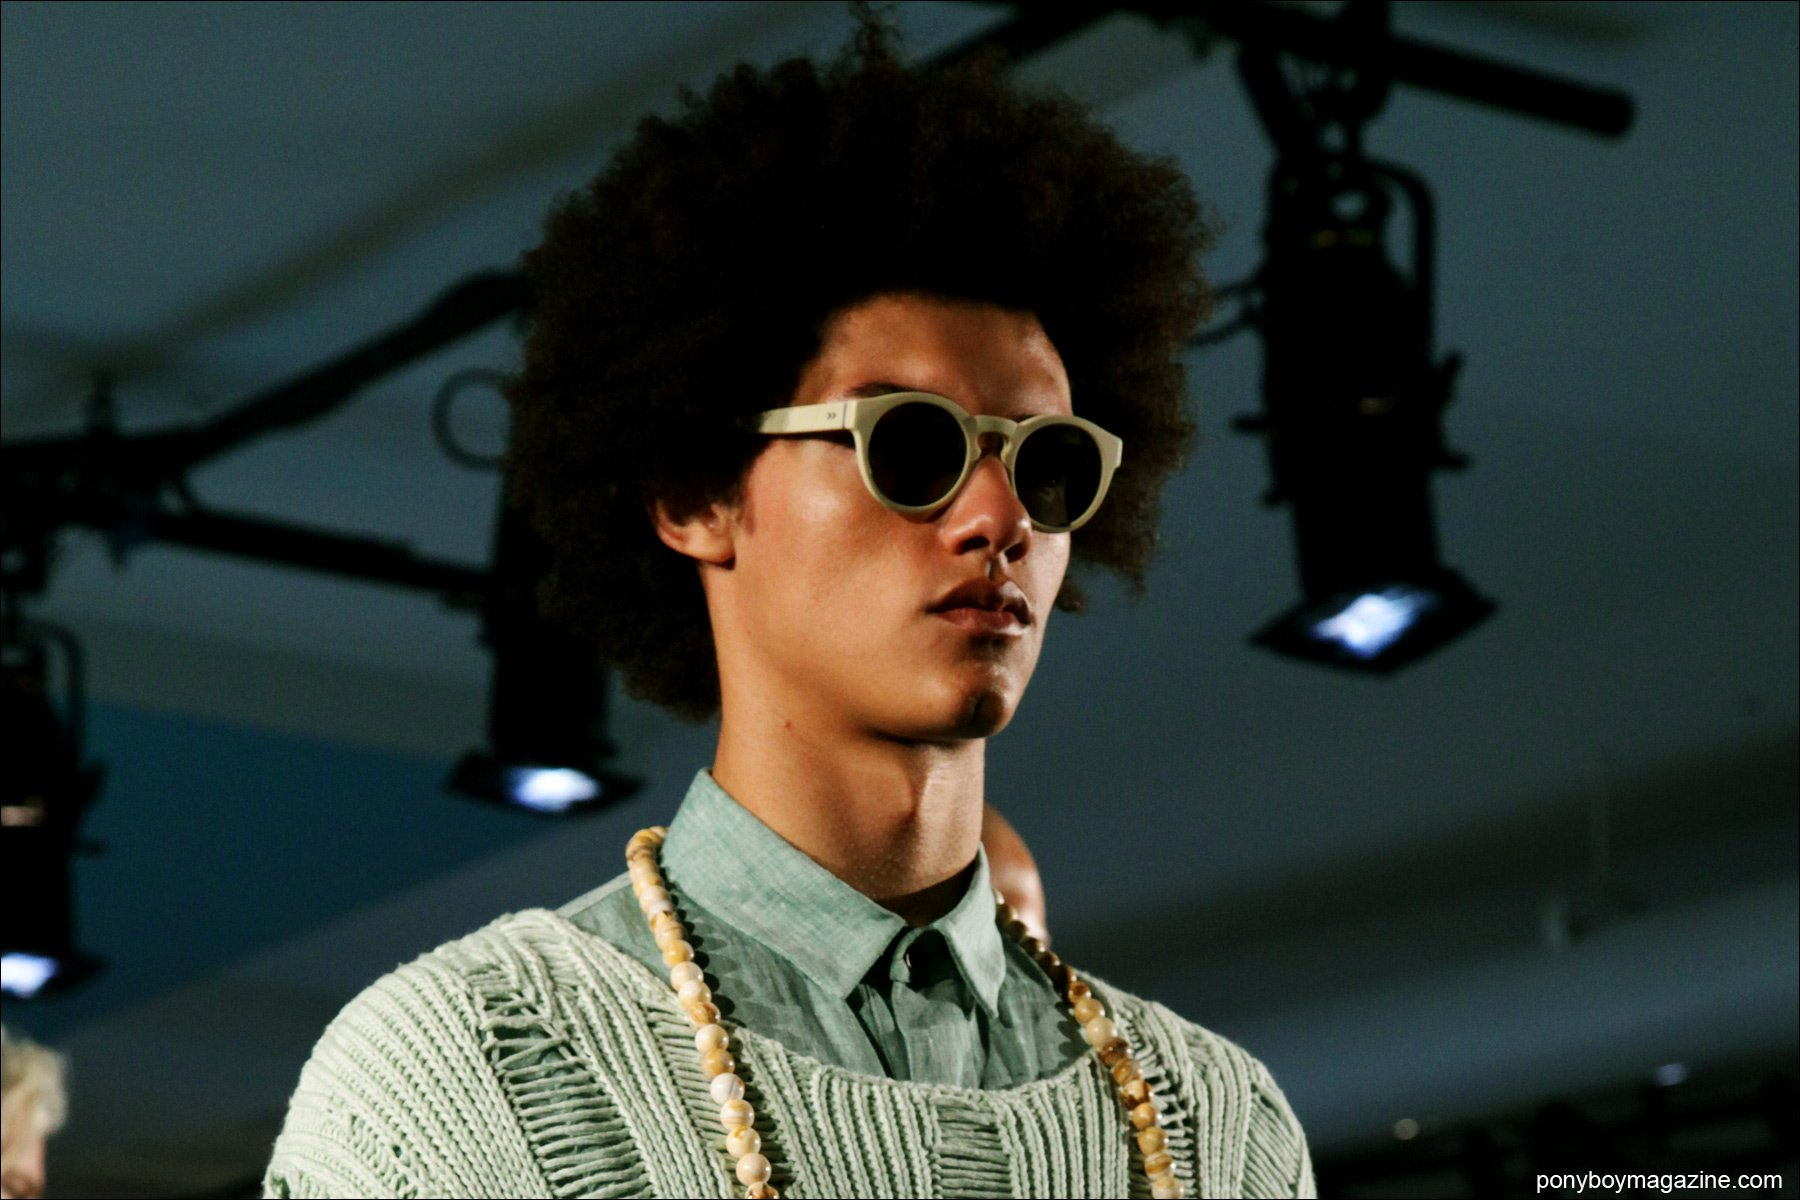 A male model in an afro and sunglasses at Rochambeau S/S 2015 presentation at Milk Made. Photograph by Alexander Thompson.